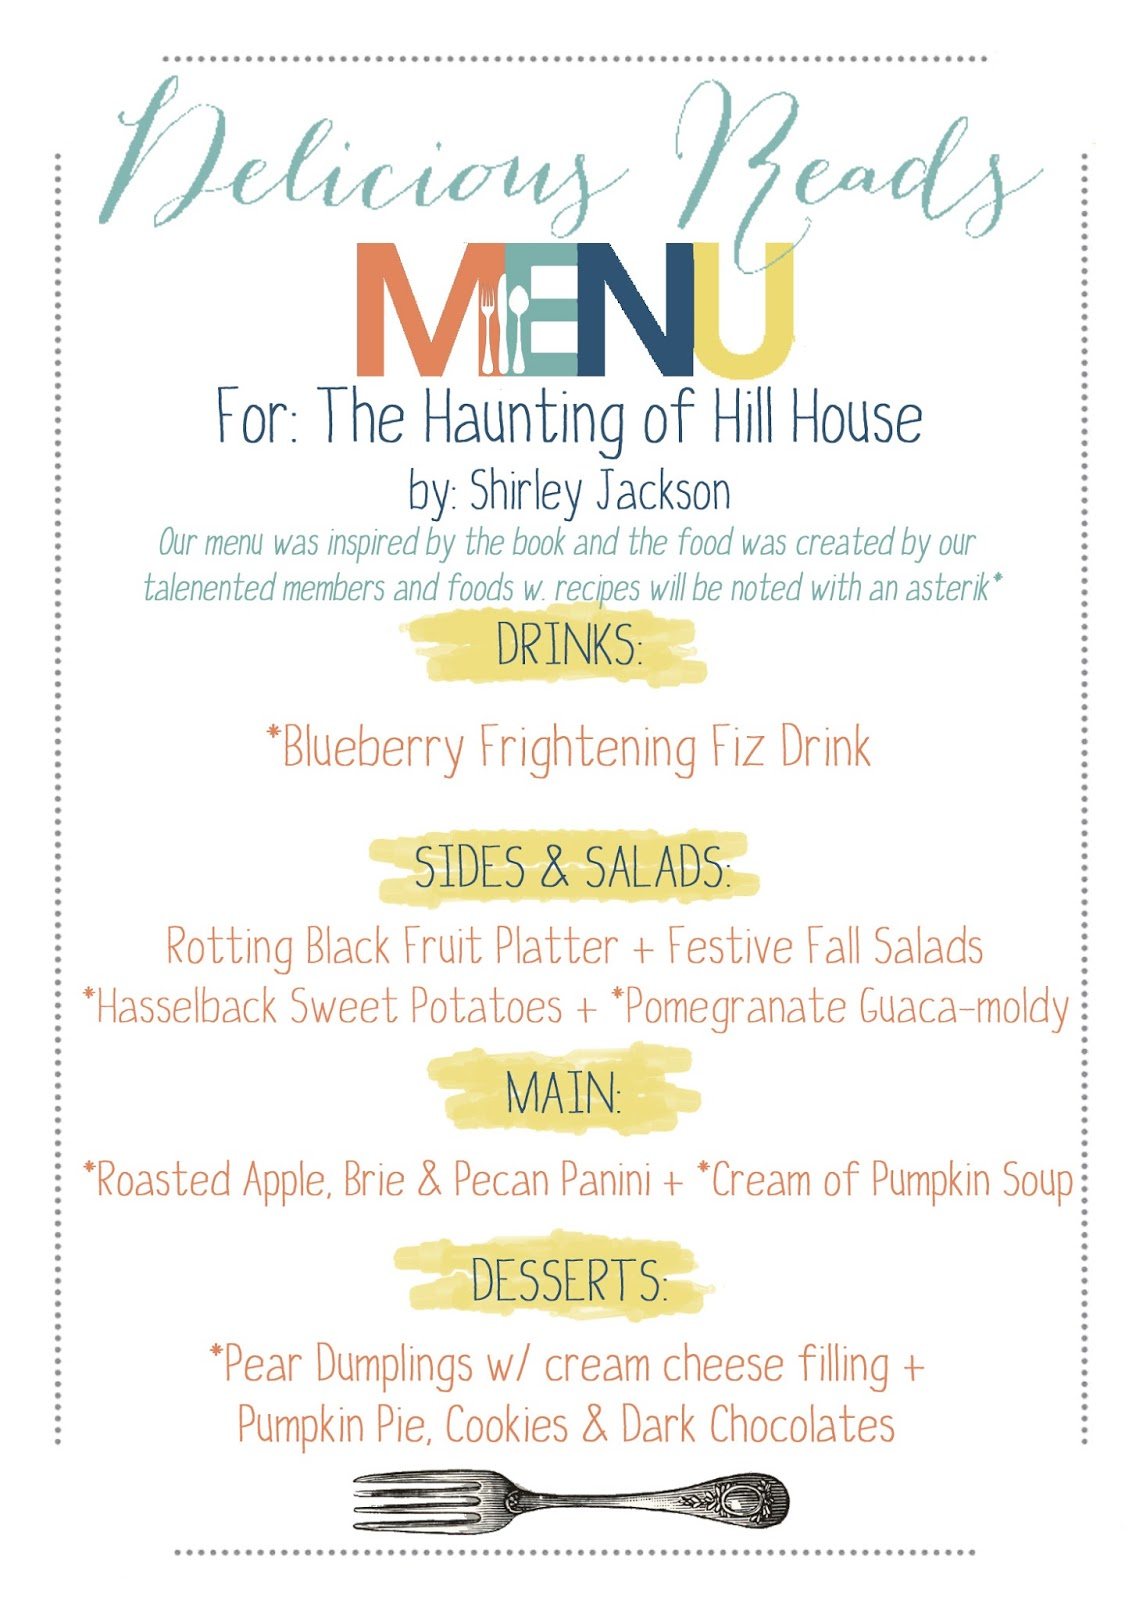 Book menu, menu for the haunting of hill house